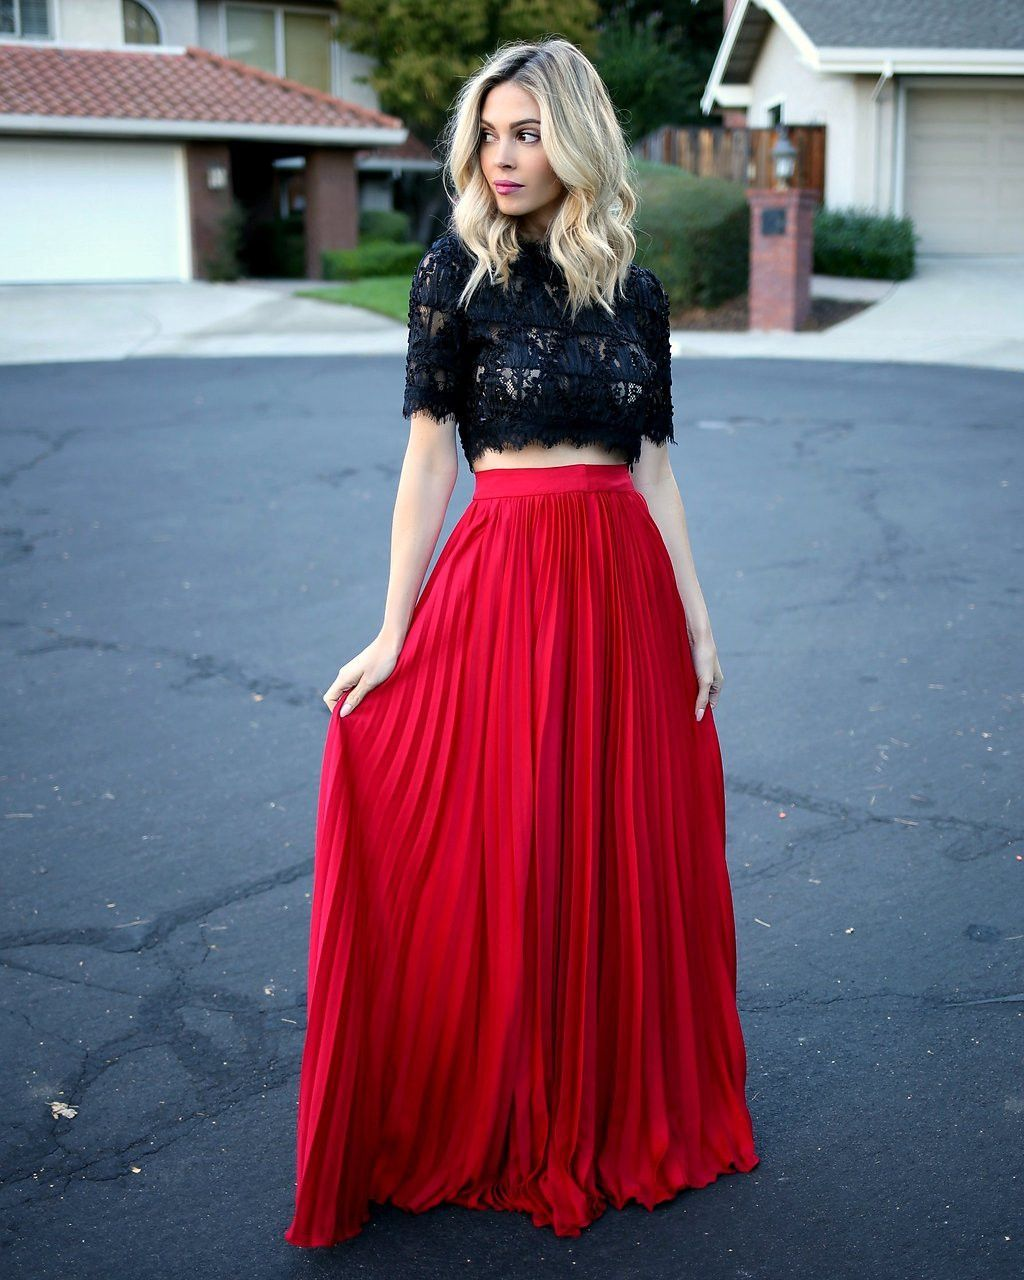 Elegance Maxi Skirt | Style. | Pinterest | Clothes, Dress skirt and ...